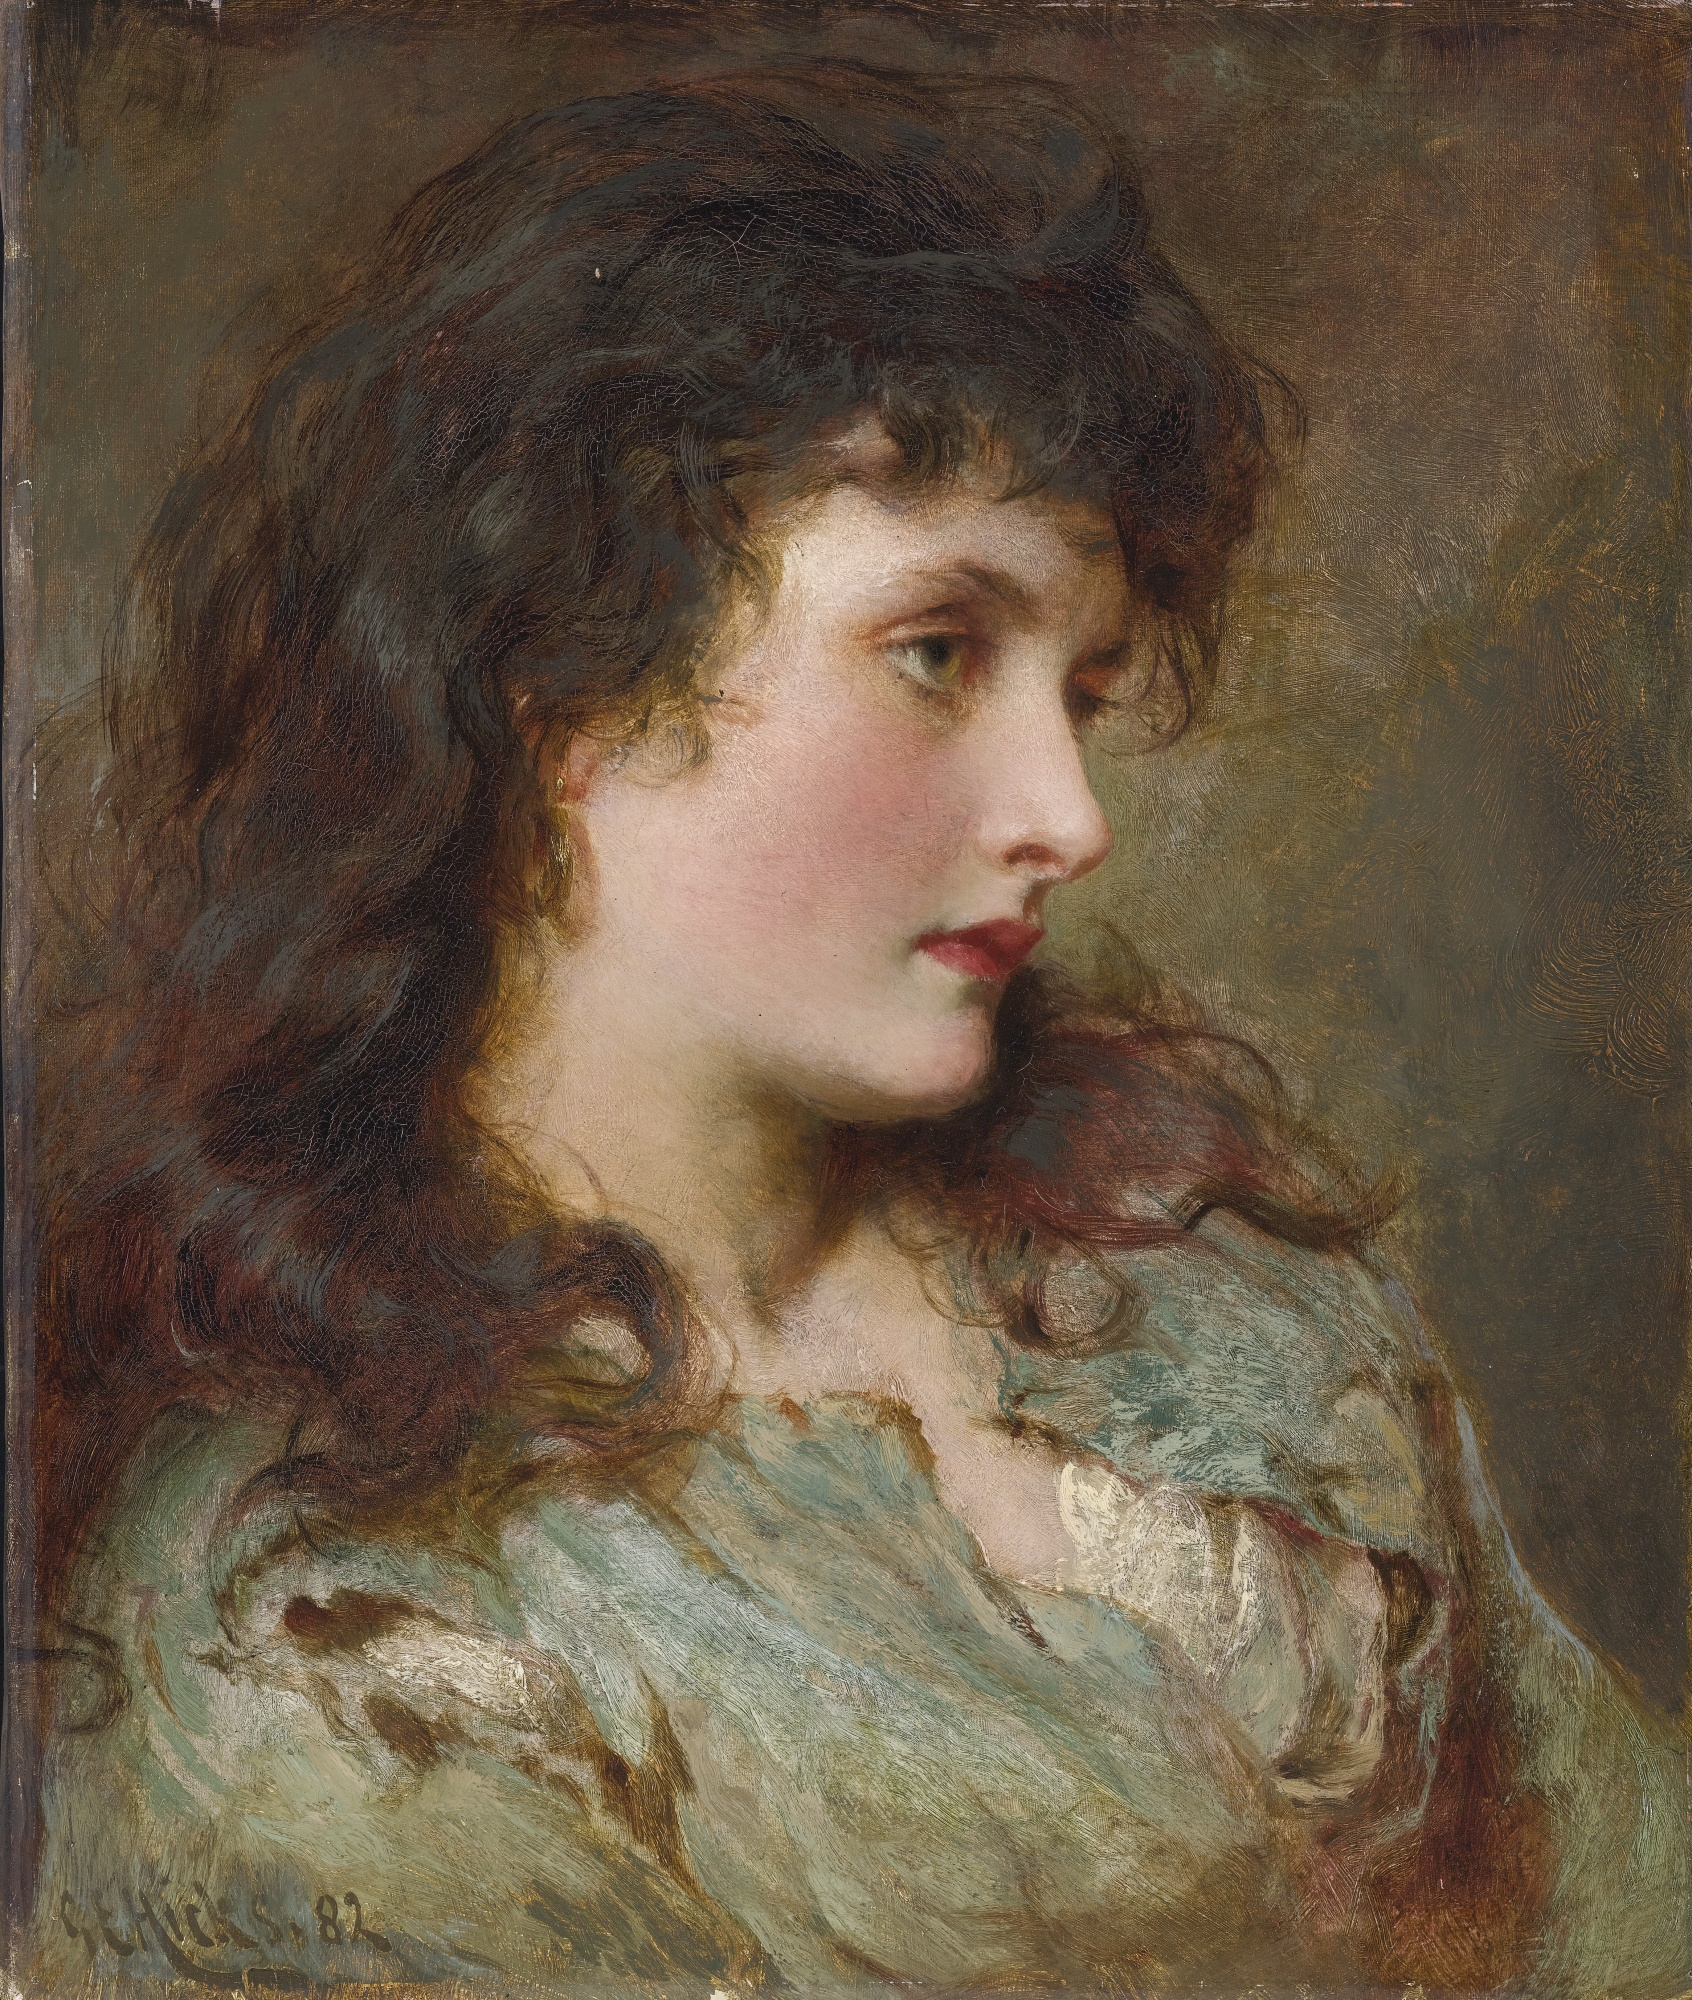 Maud Muller, Poem by  John Greenleaf Whittier (1807-1892), Painting by George Elgar Hicks, New Jersey, NJ, Criminal Defense, Municipal Court, Juvenile, Lawyer, Attorney, Woodbury, Gloucester County, Cumberland County, Salem County, Atlantic County, Camden County, Burlington County, Mercer County, Ocean County, Monmouth County, Essex County, Union County